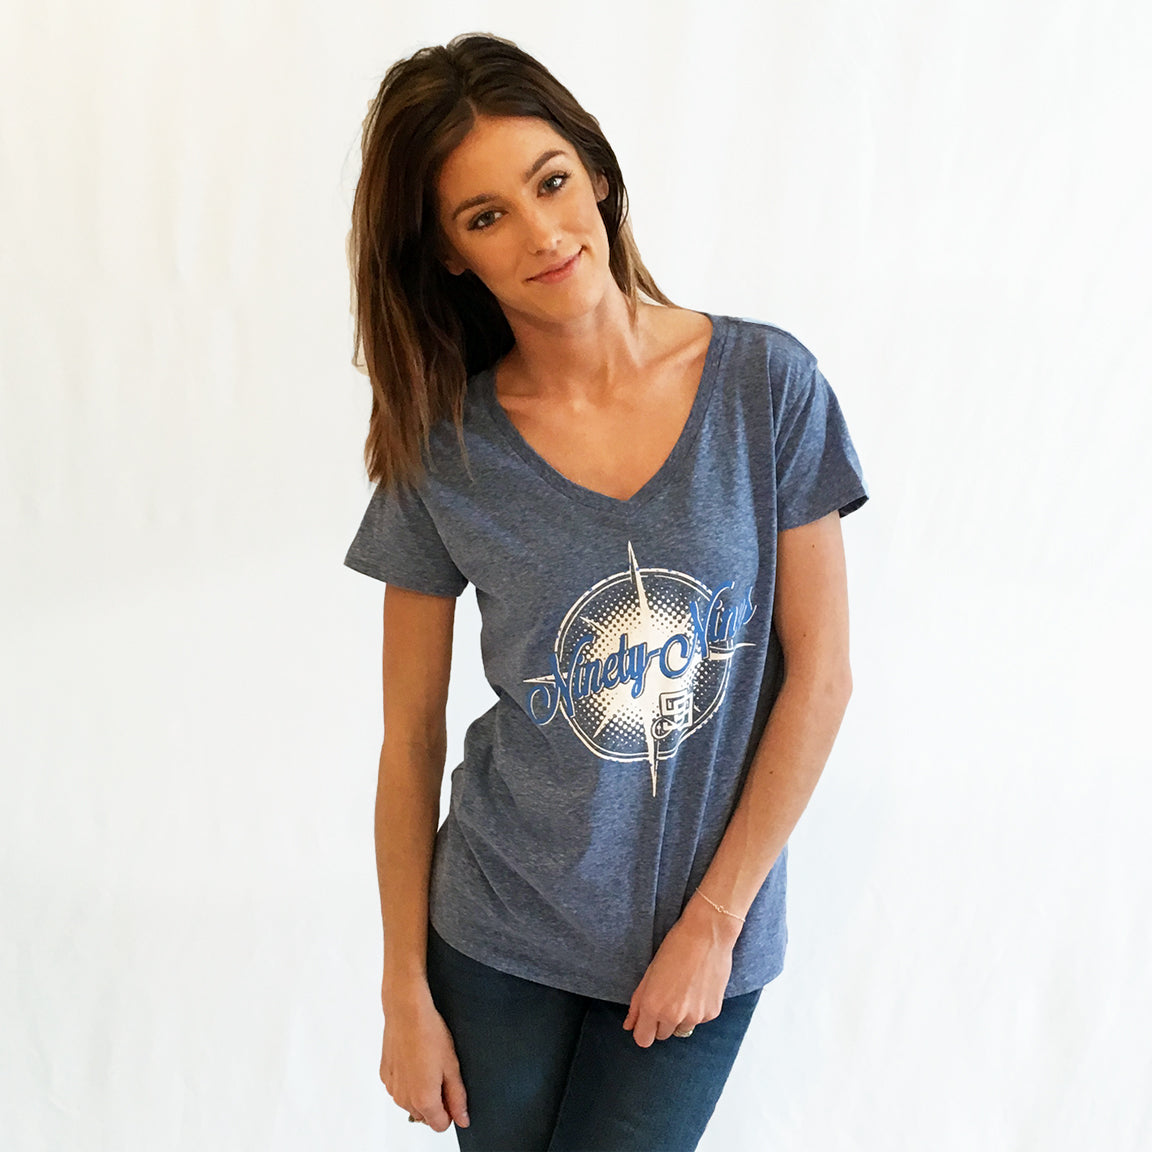 One Plane Jane & Ninety-Nine Logo shirt. Cosmic blue V-neck t-shirt with white compass and blue words (Ninety-Nines).  Ninety-nine logo embedded in design